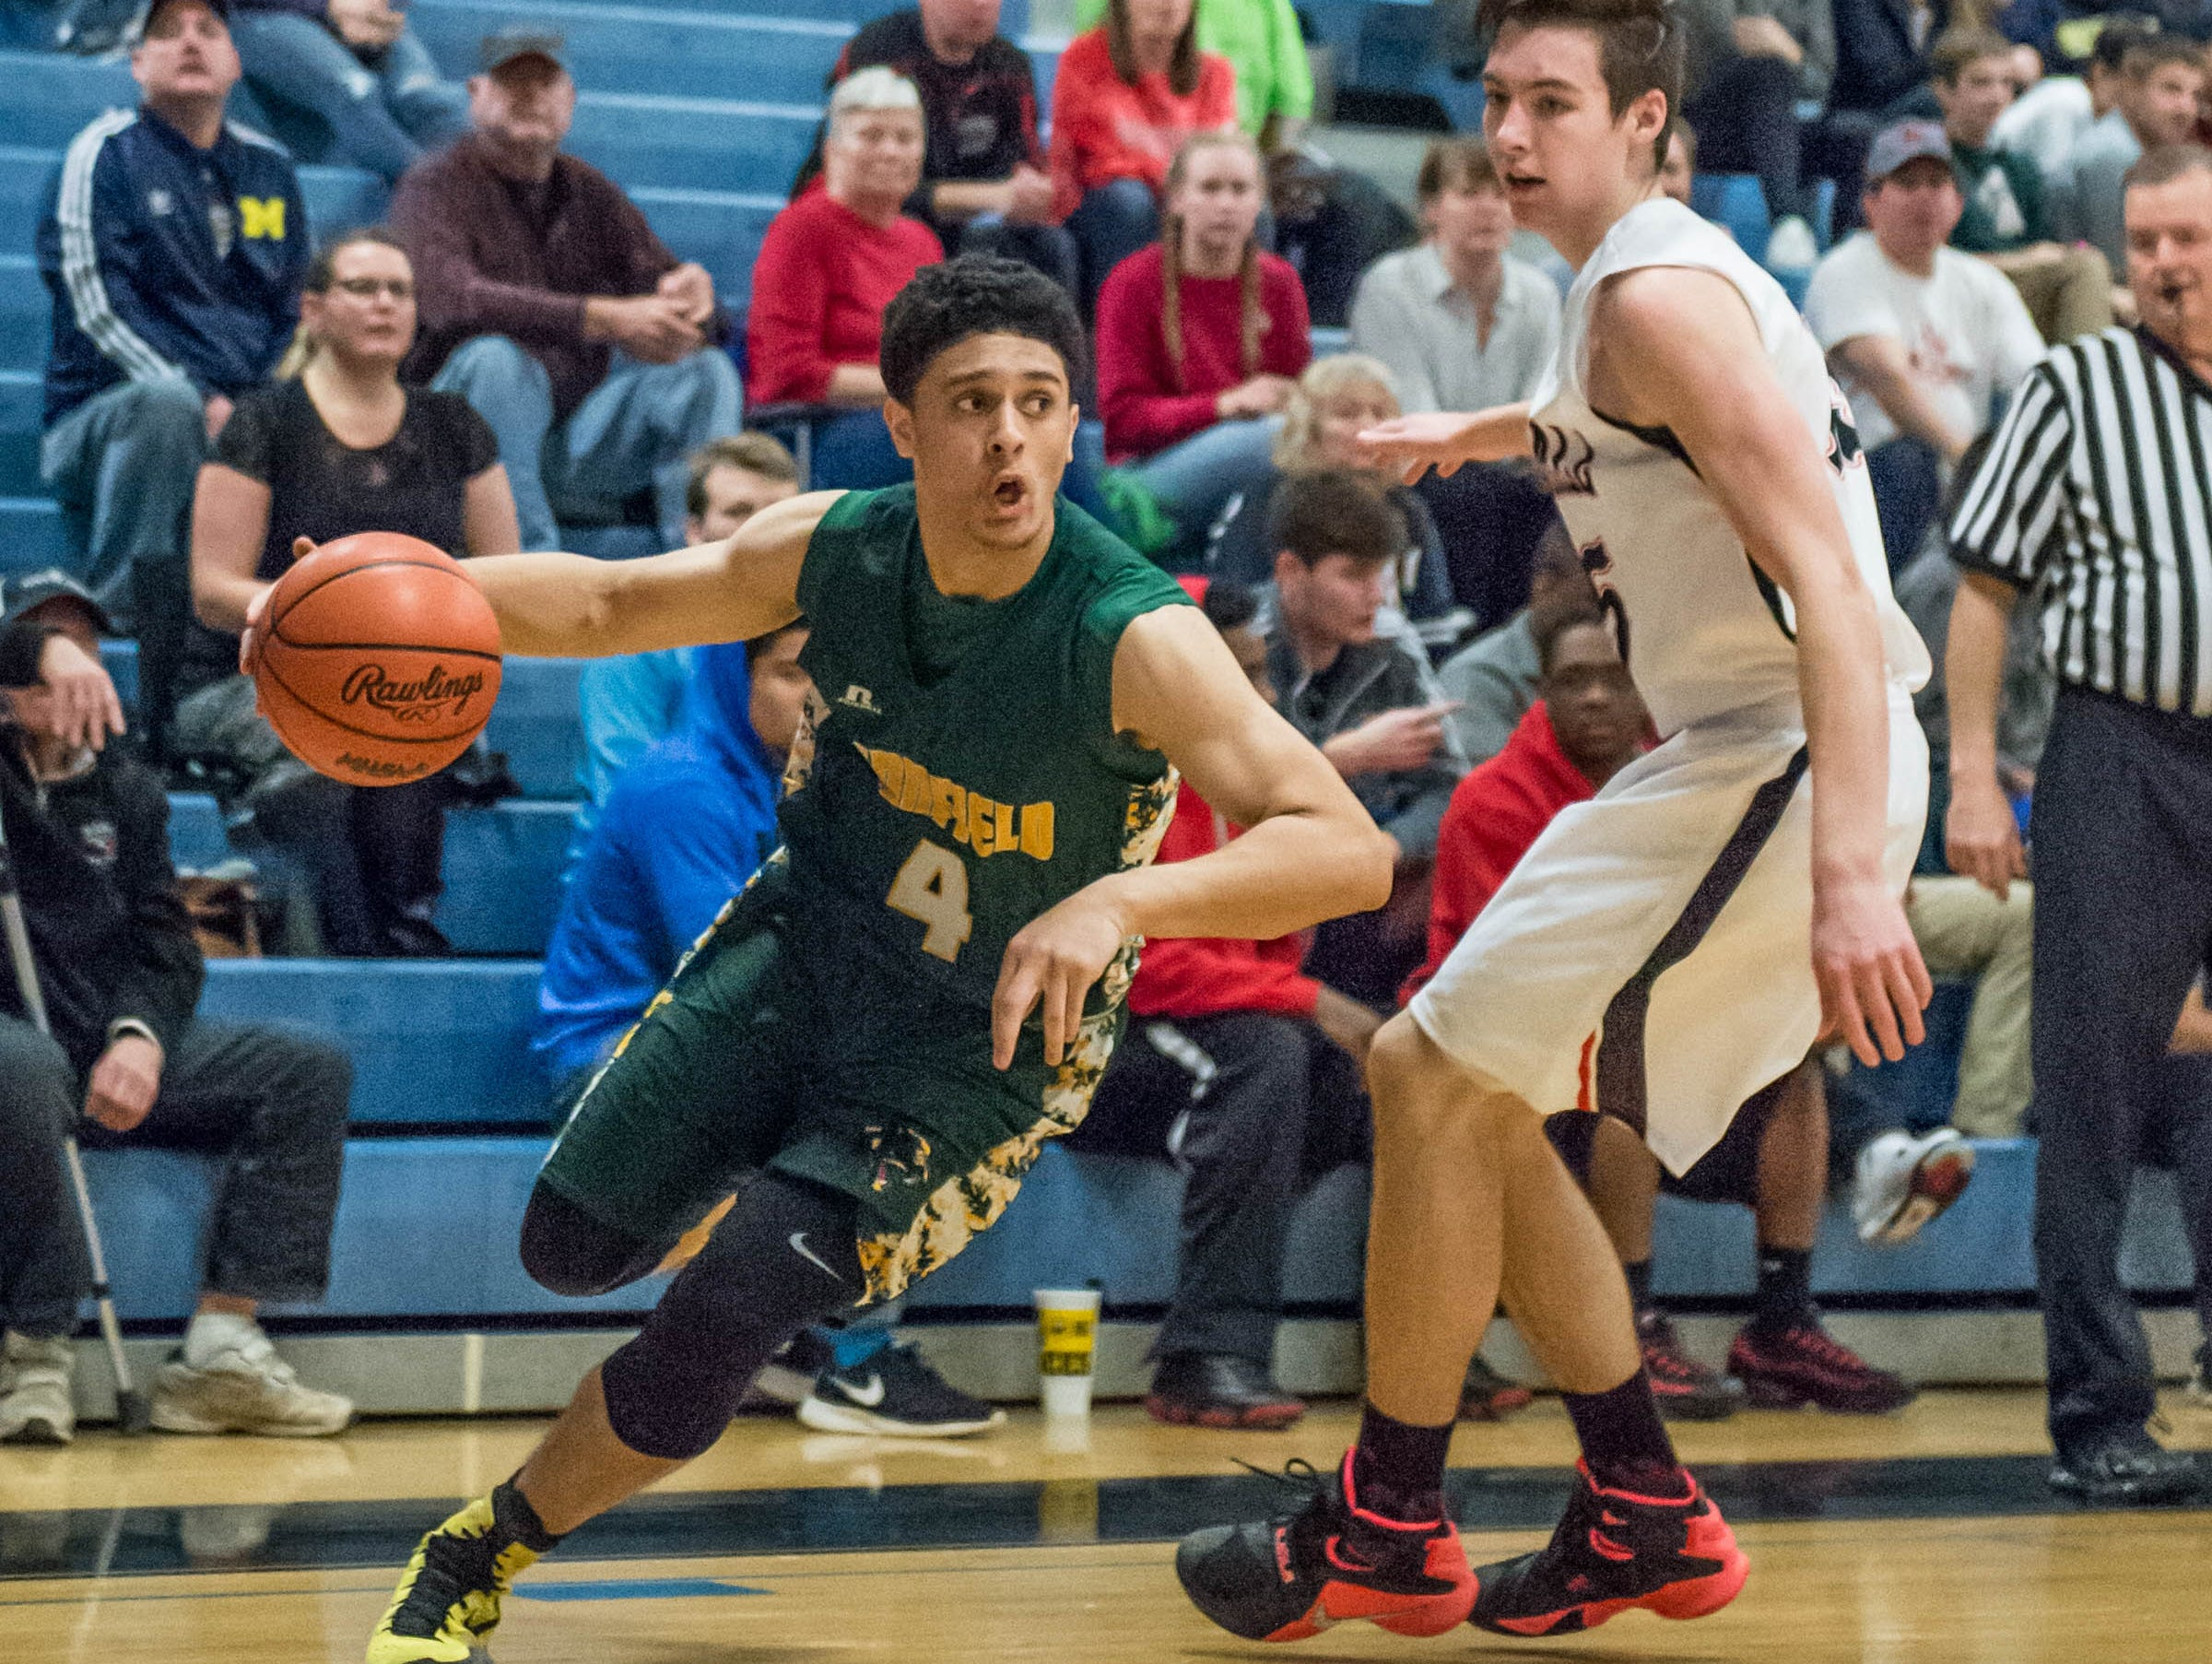 Pennfield's Deveaire Todd (4) drives to the basket during Monday's district game.